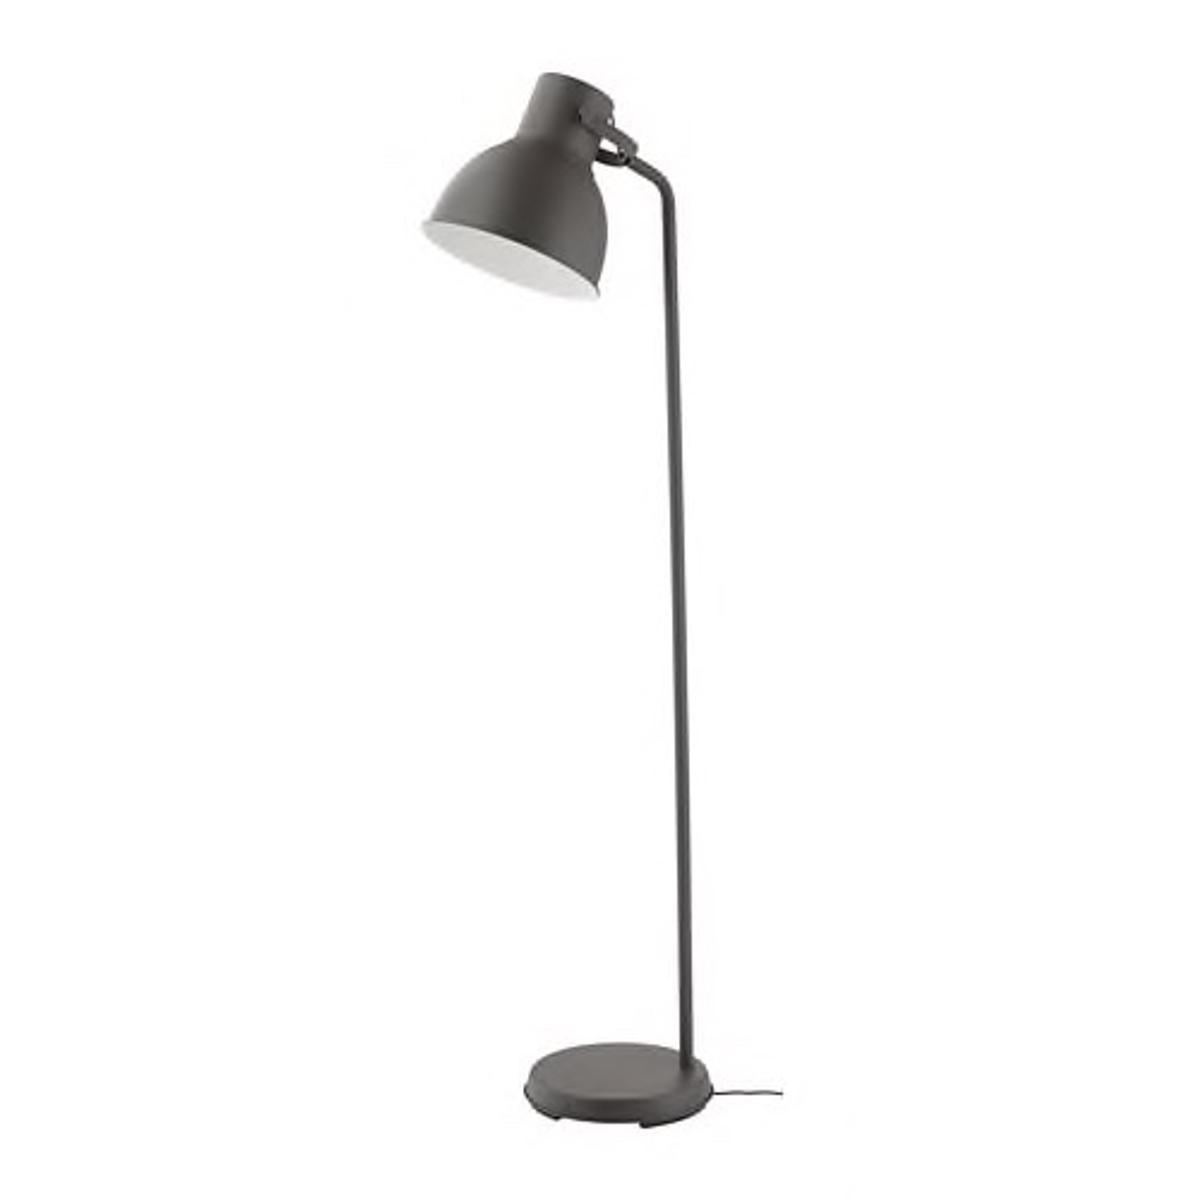 Lampada Ikea In 80020 Frattaminore For 35 00 For Sale Shpock